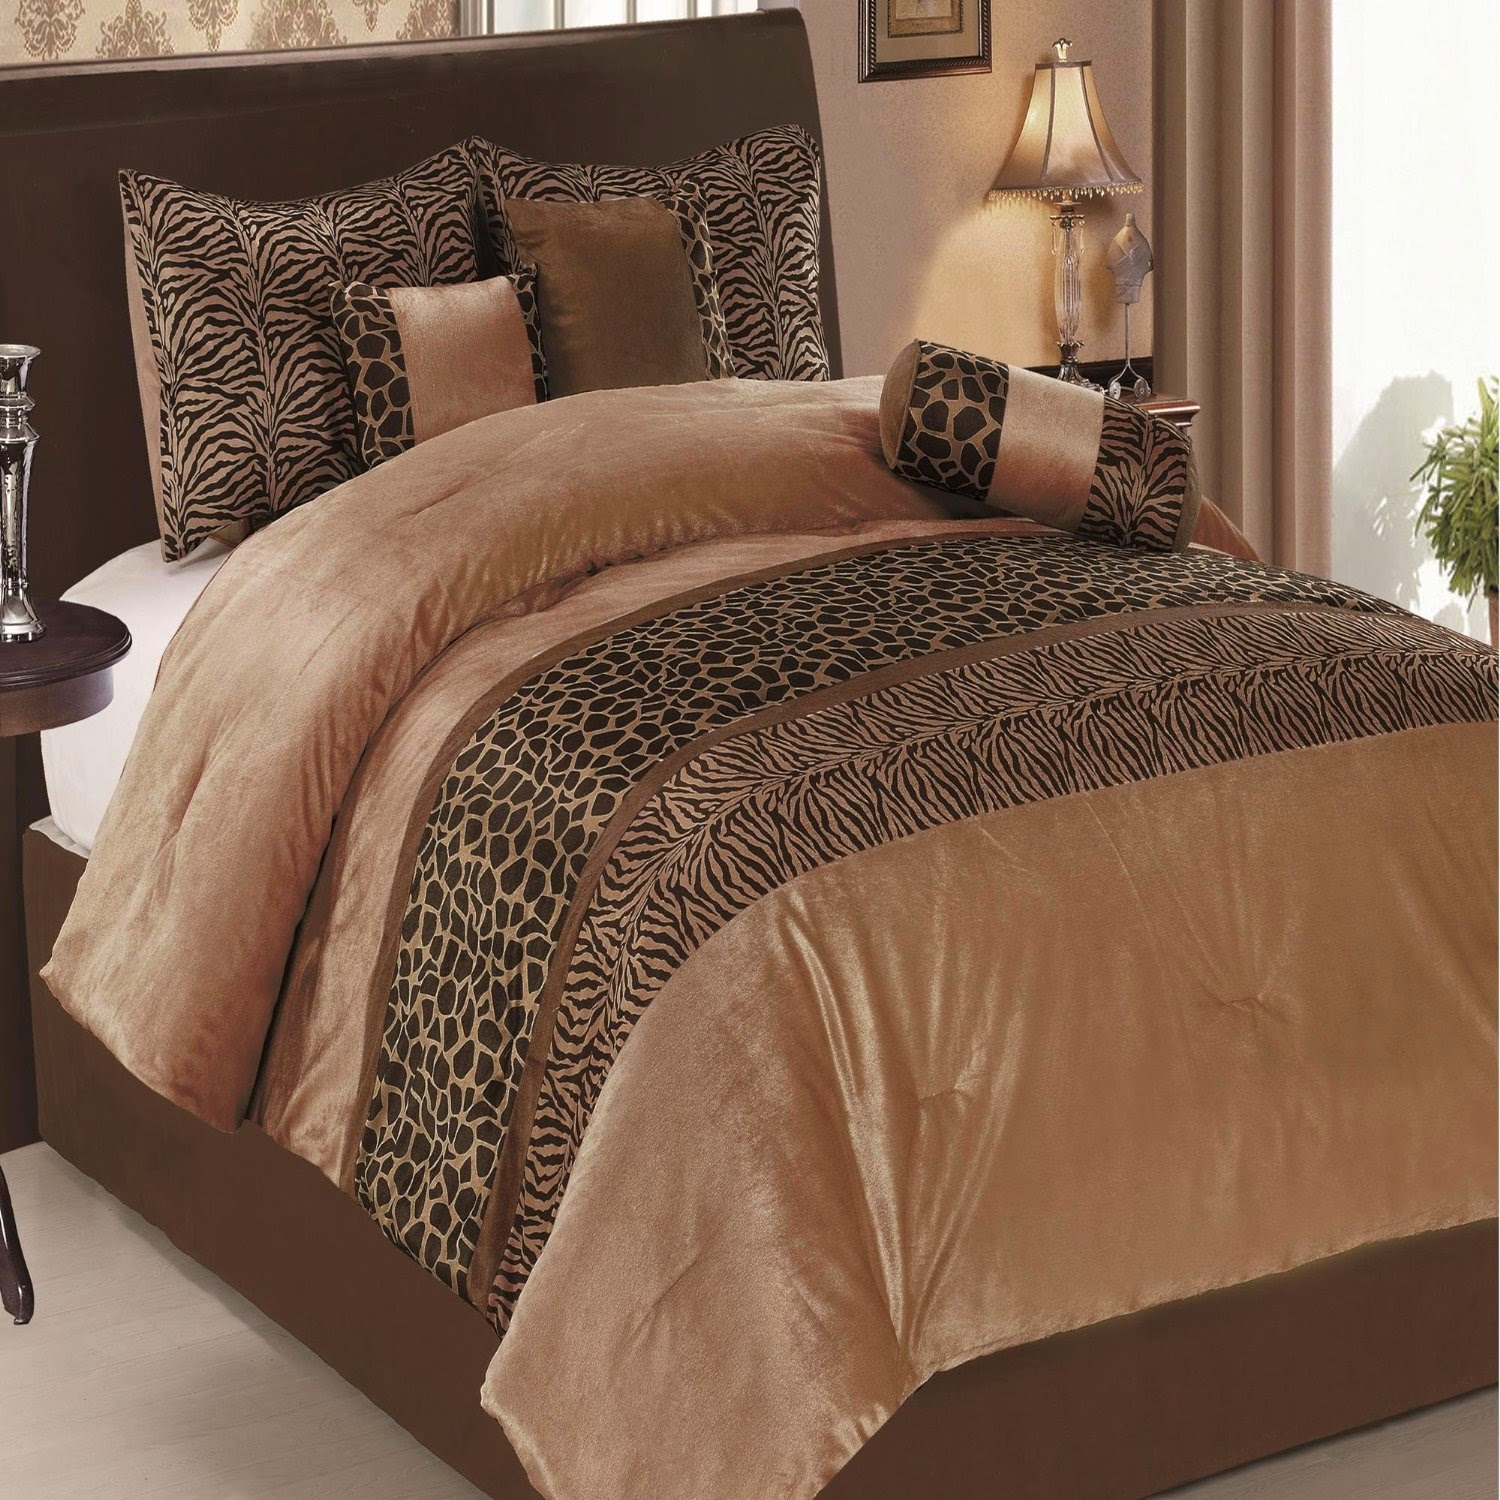 Bedroom decor ideas and designs top ten animal pattern for Animal themed bedroom ideas